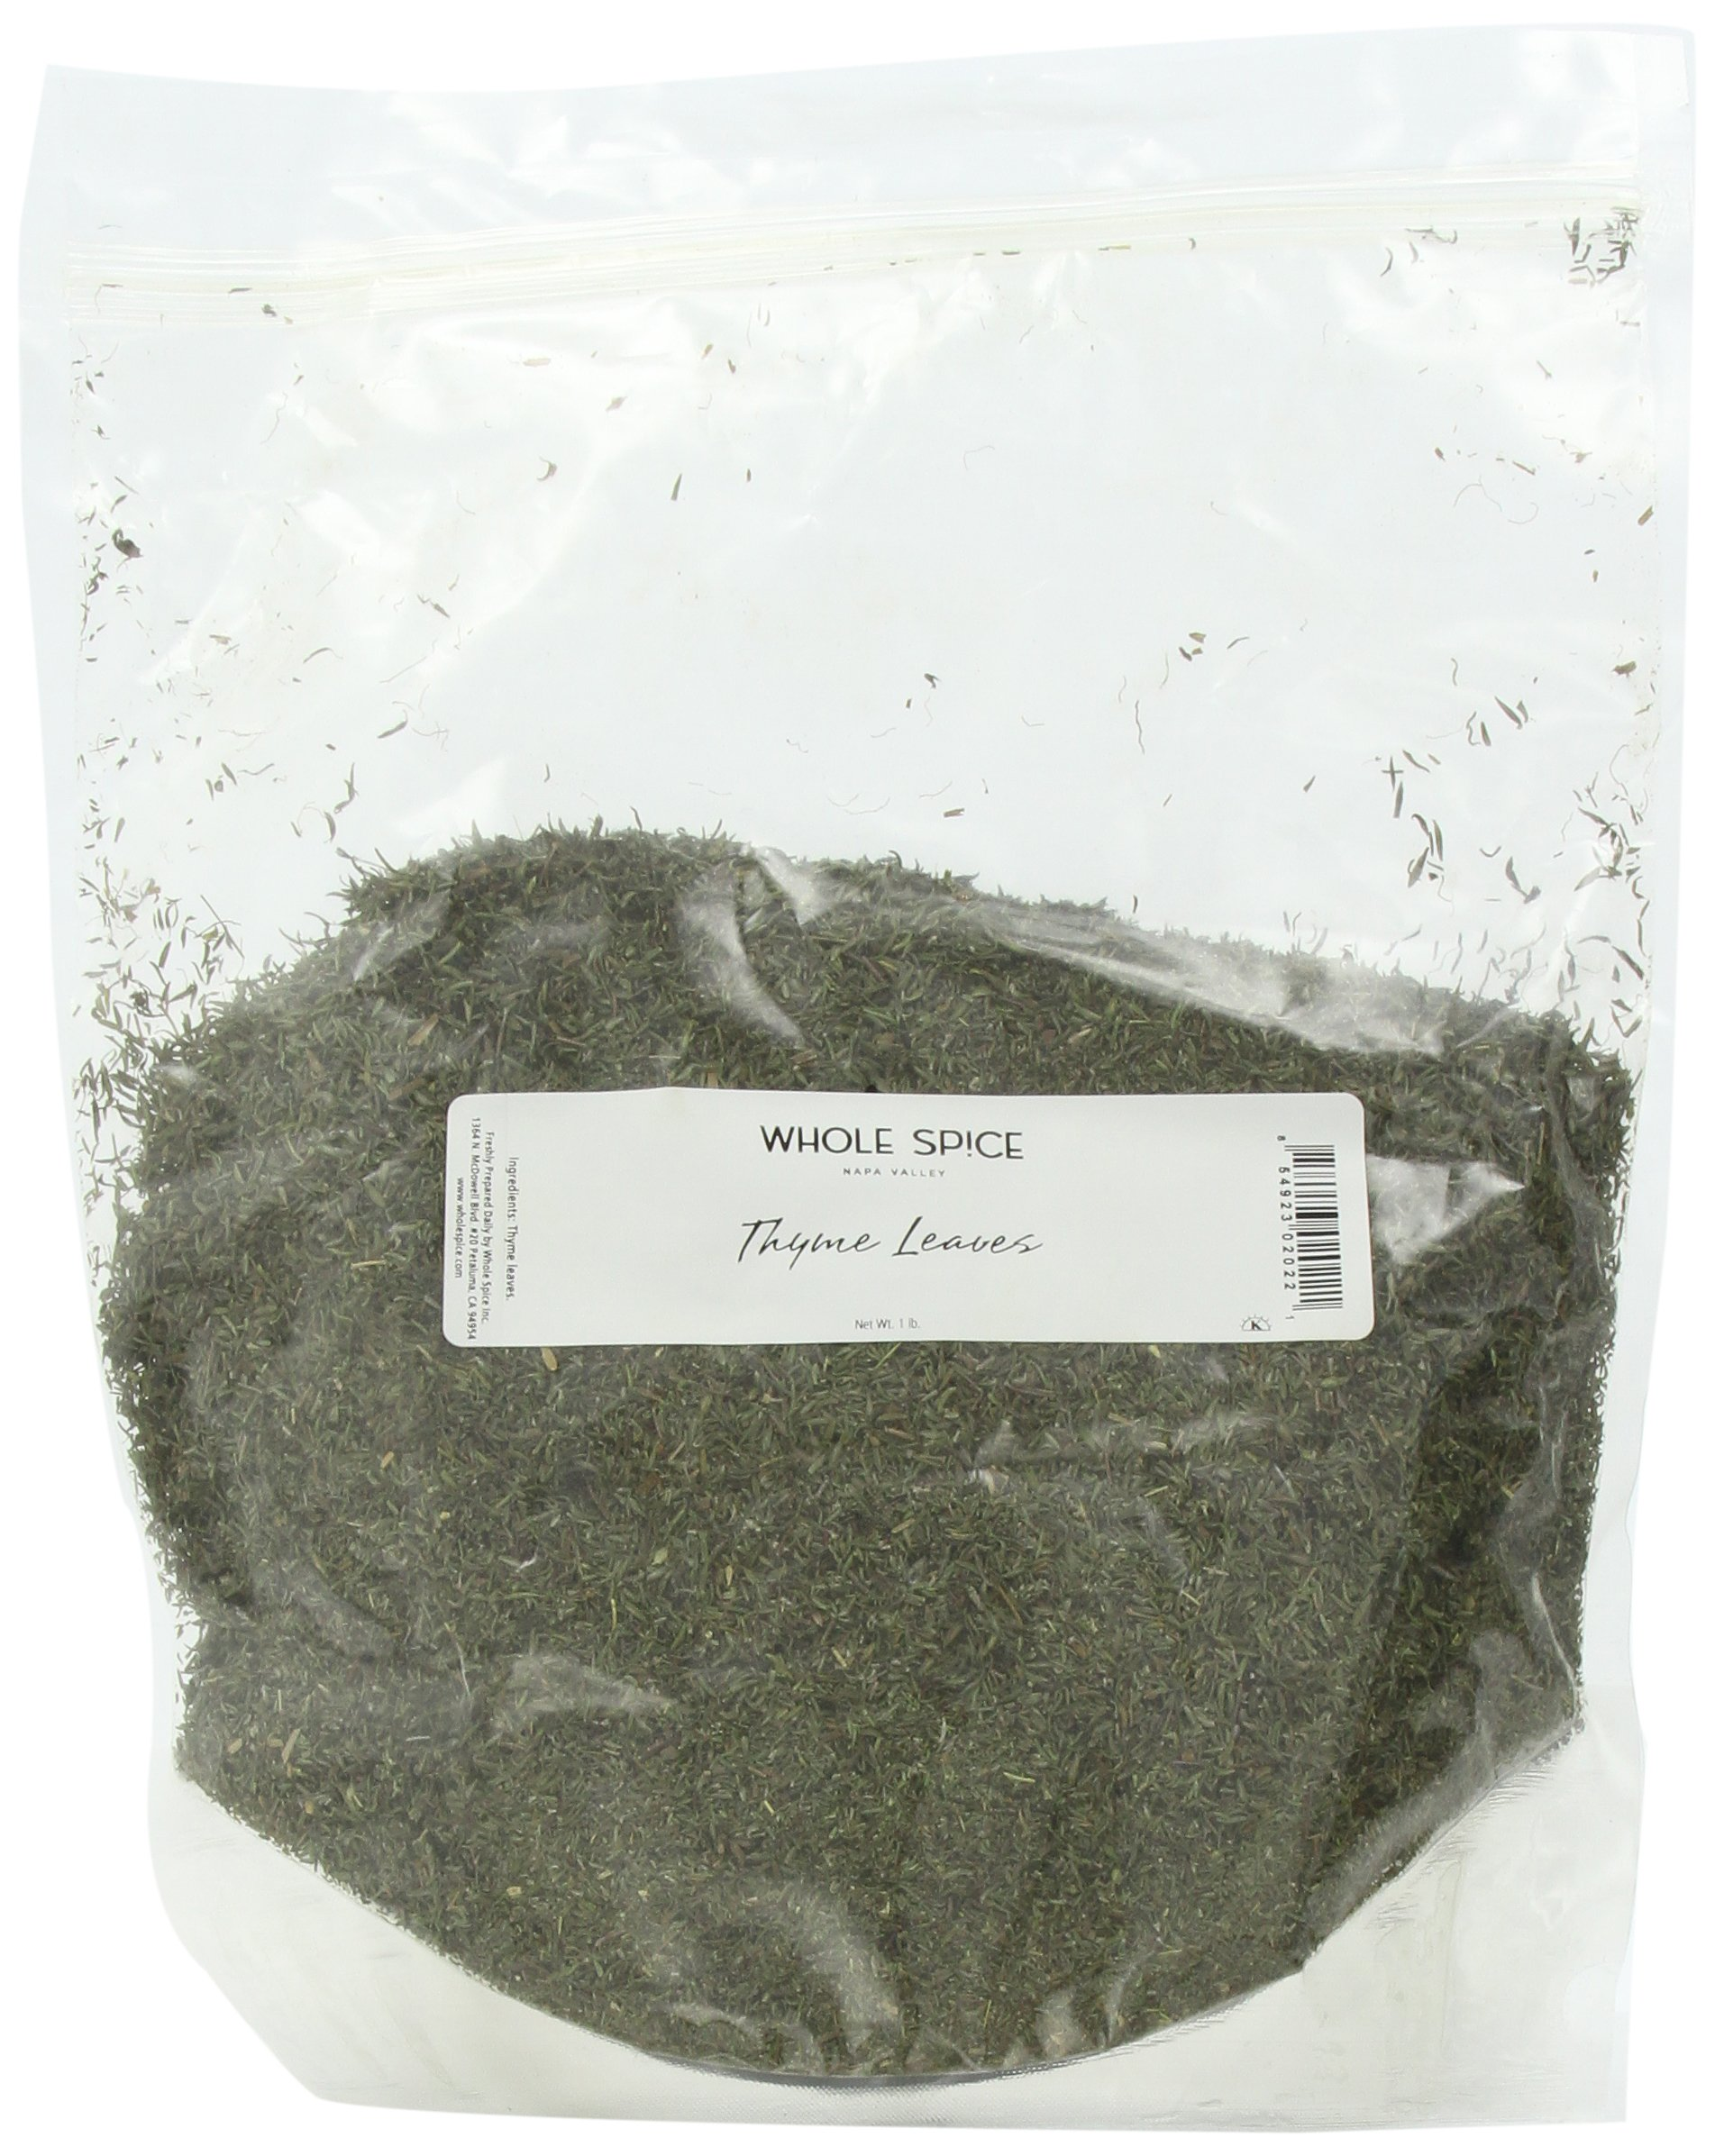 Whole Spice Thyme Leaves Whole, 1 Pound